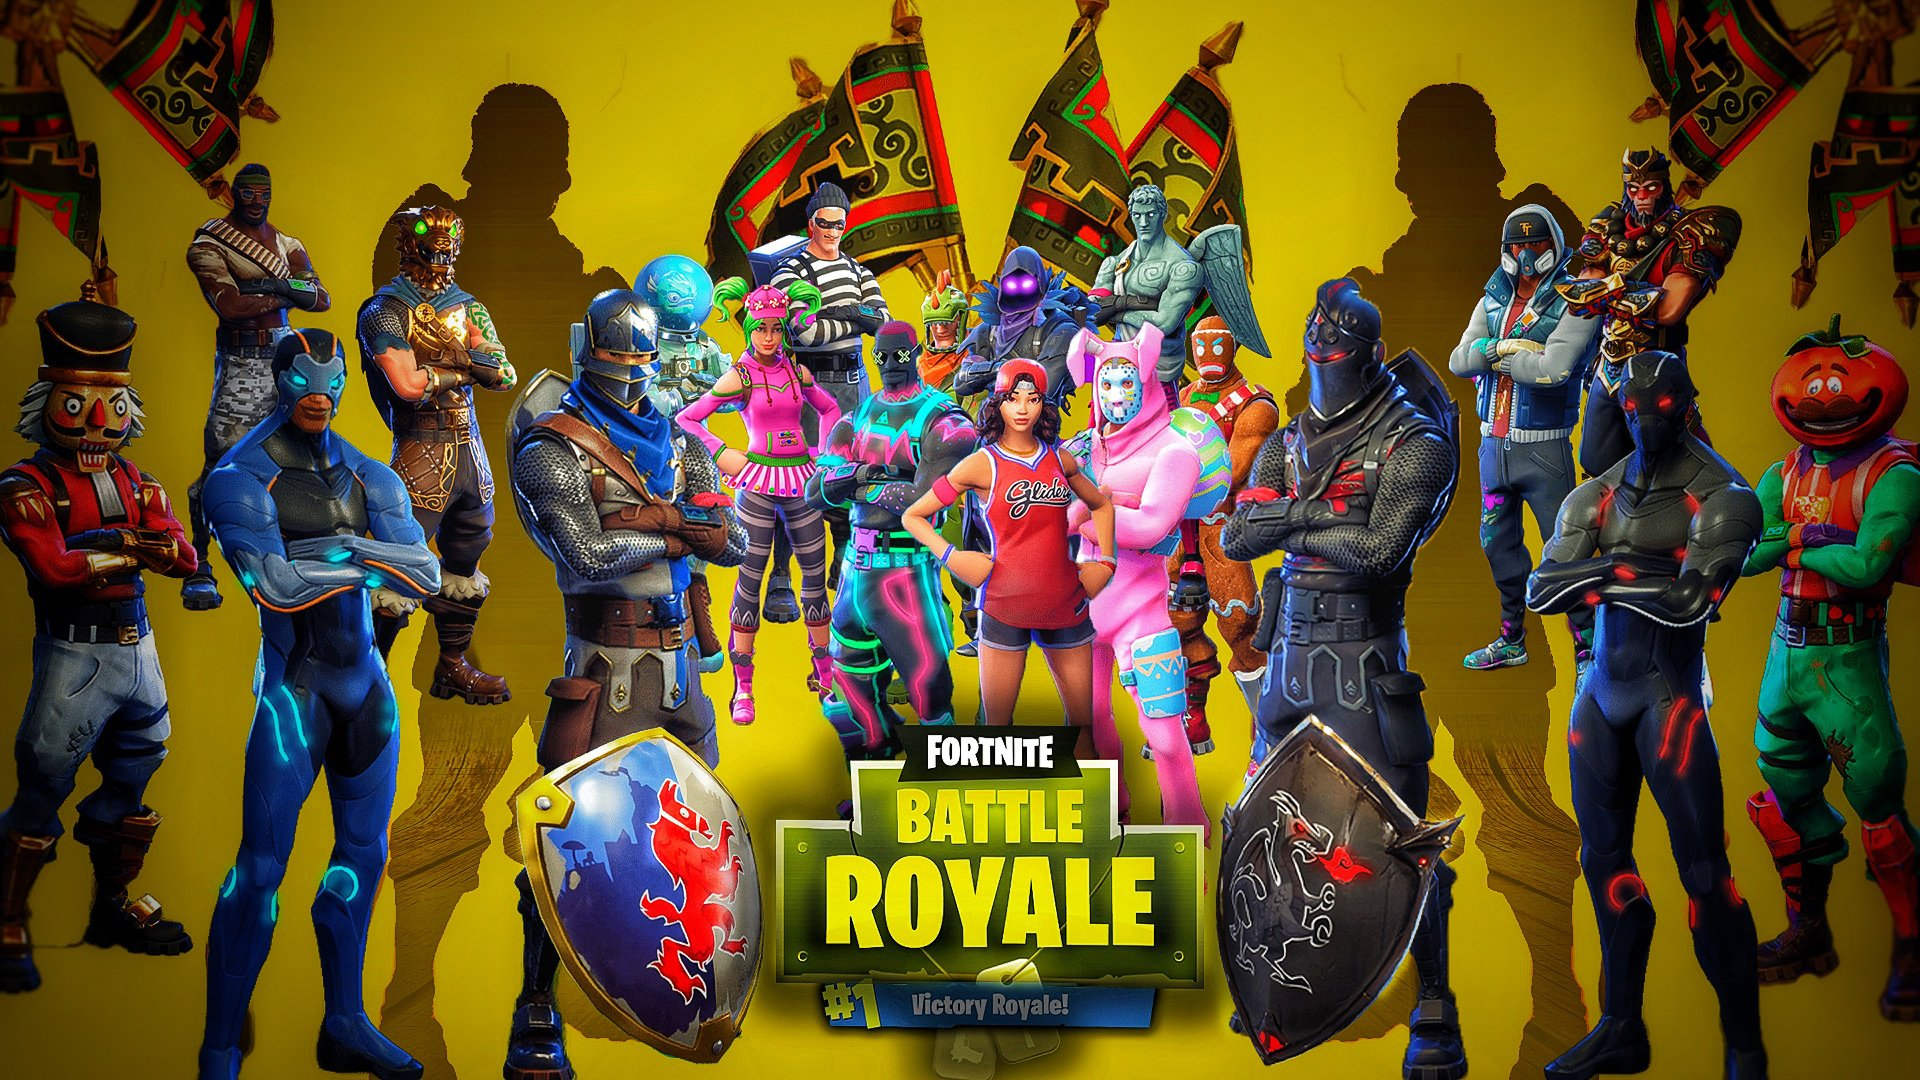 Fortnite Battle Royale Wallpaper Tapeta Hd Wallpaper Background Image 1920x1080 Id 934290 Wallpaper Abyss